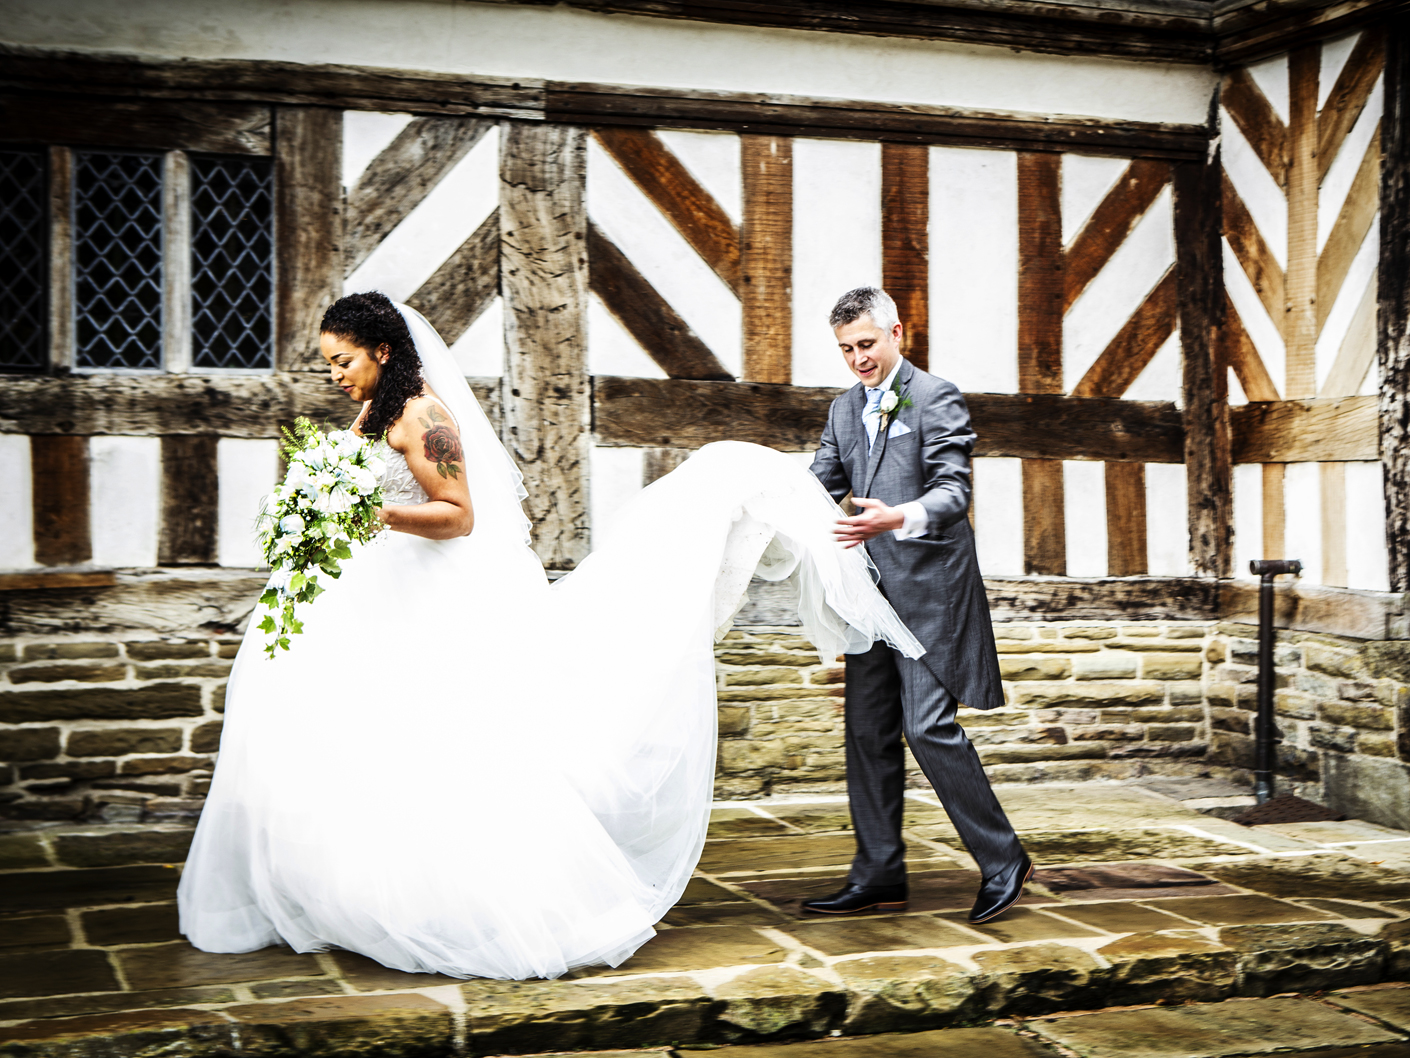 wedding-photography-of-the-bride-and-groom-after-the-ceremony-at-adlington-hall-cheshire